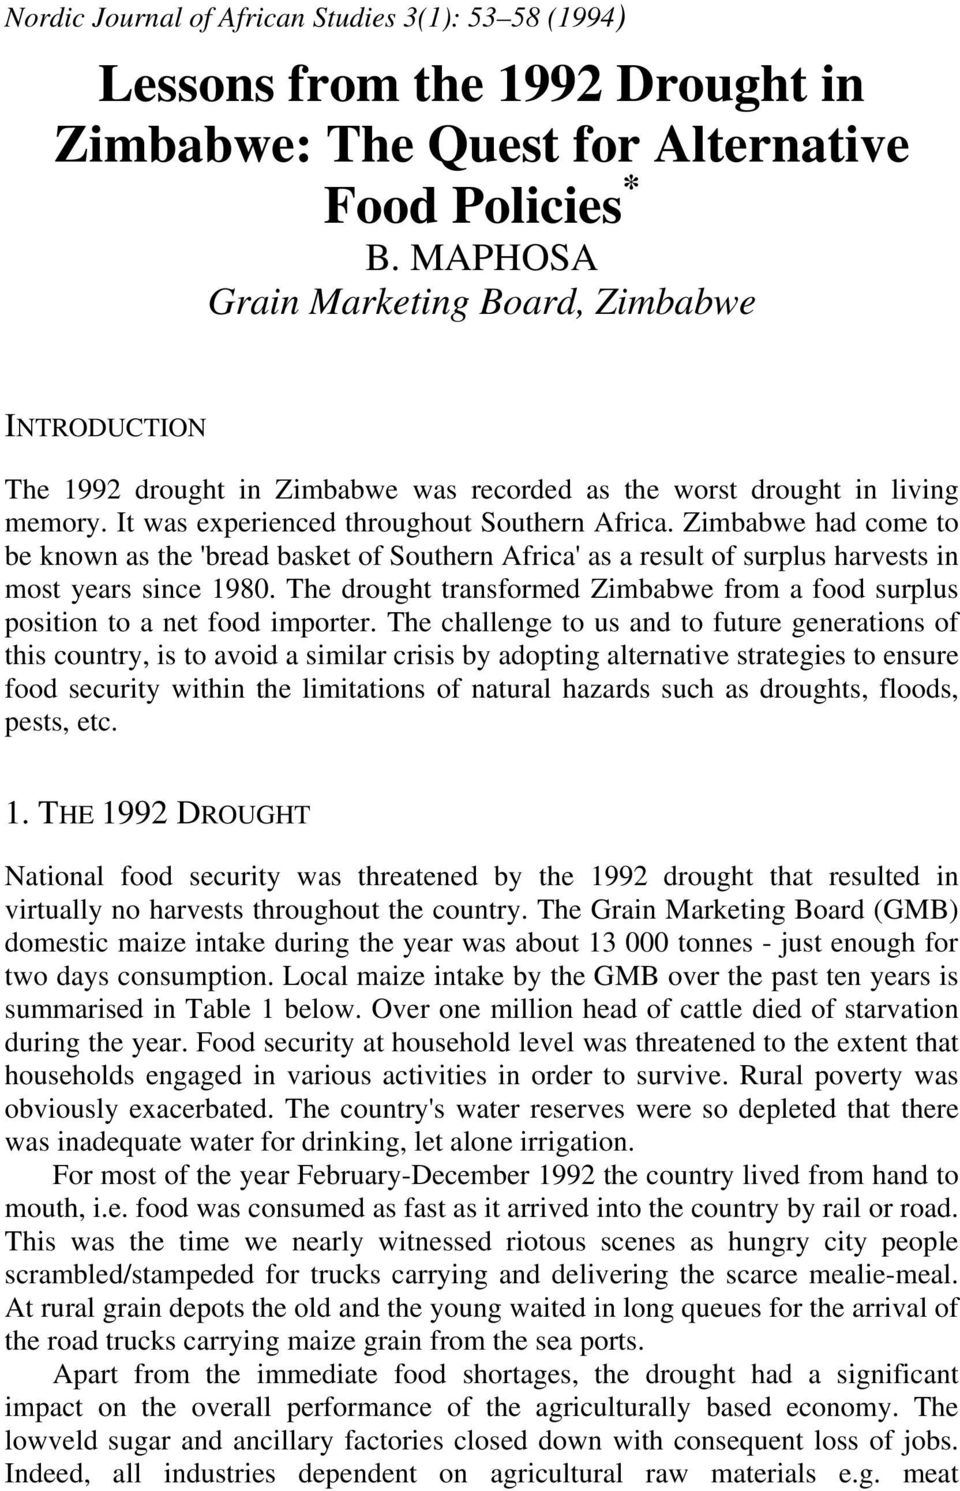 Zimbabwe had come to be known as the 'bread basket of Southern Africa' as a result of surplus harvests in most years since 1980.